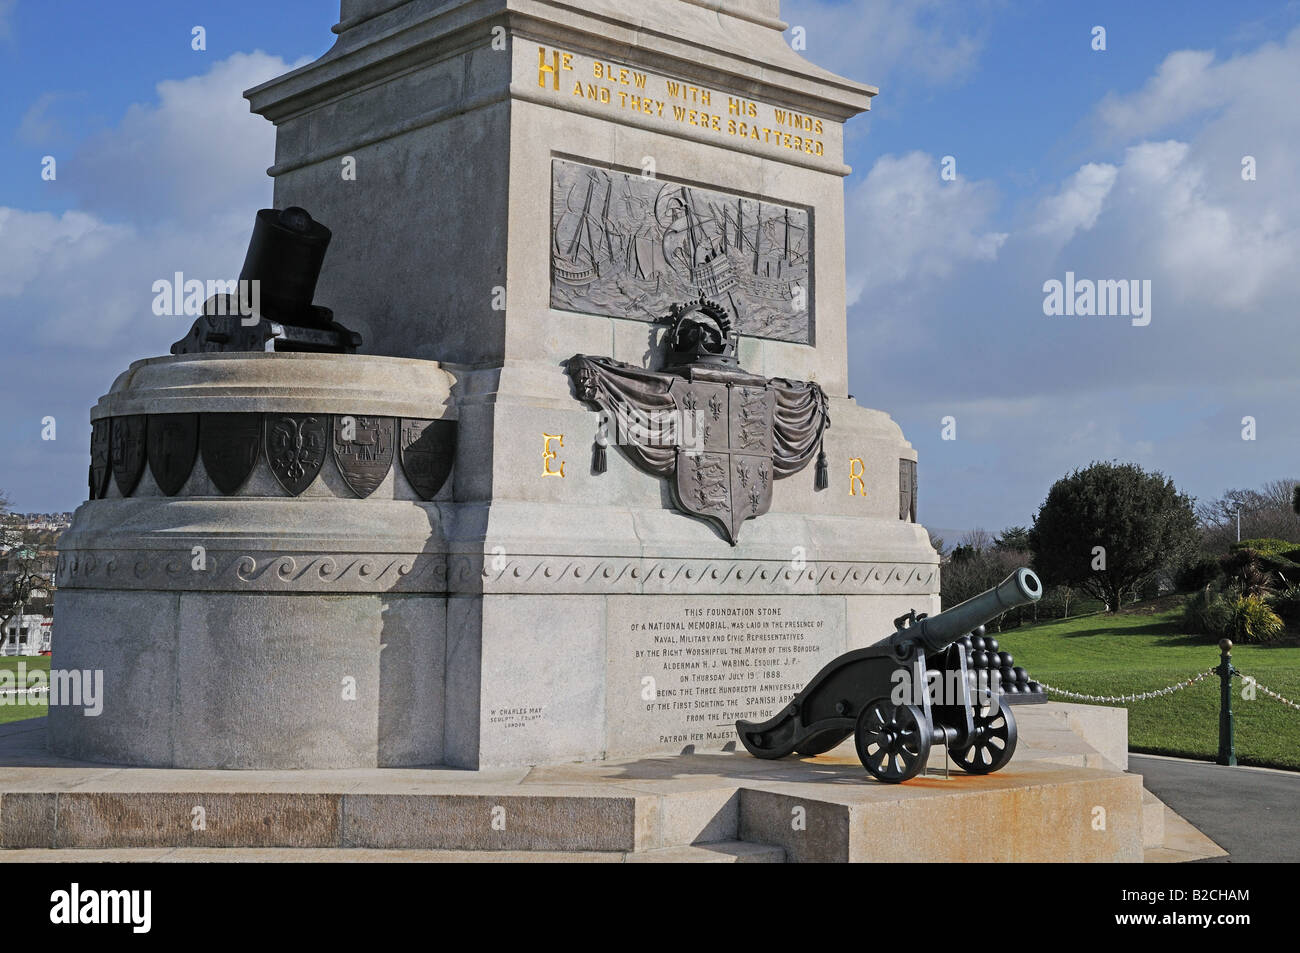 Plaque and cannon at National Memorial for 300th anniversary of sighting of Spanish Armada Plymouth Hoe England - Stock Image